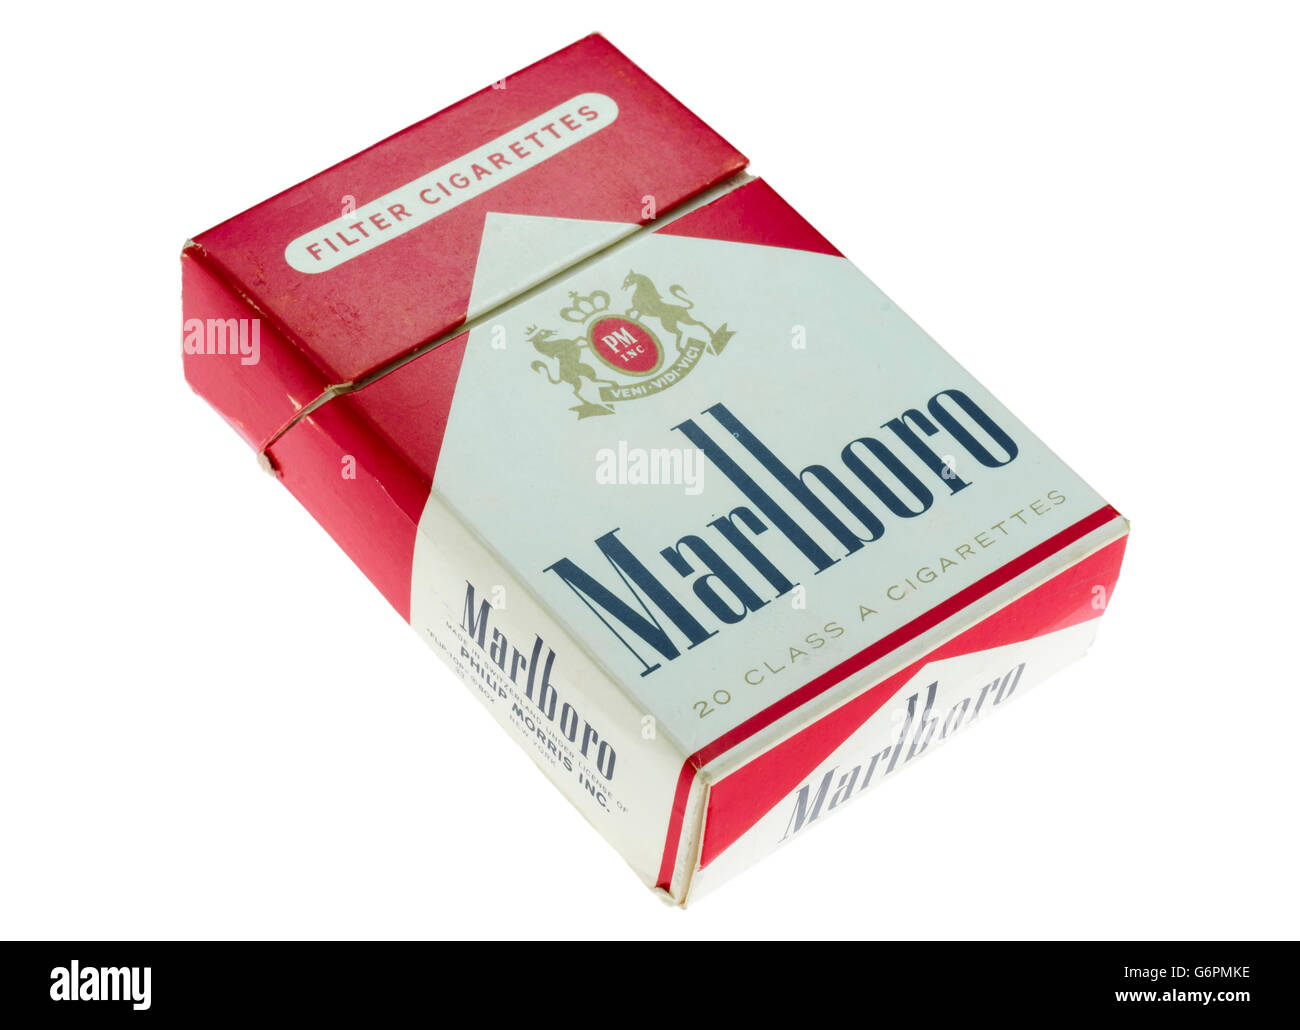 How much is a pack of cigarettes Marlboro cost in Rhode Island